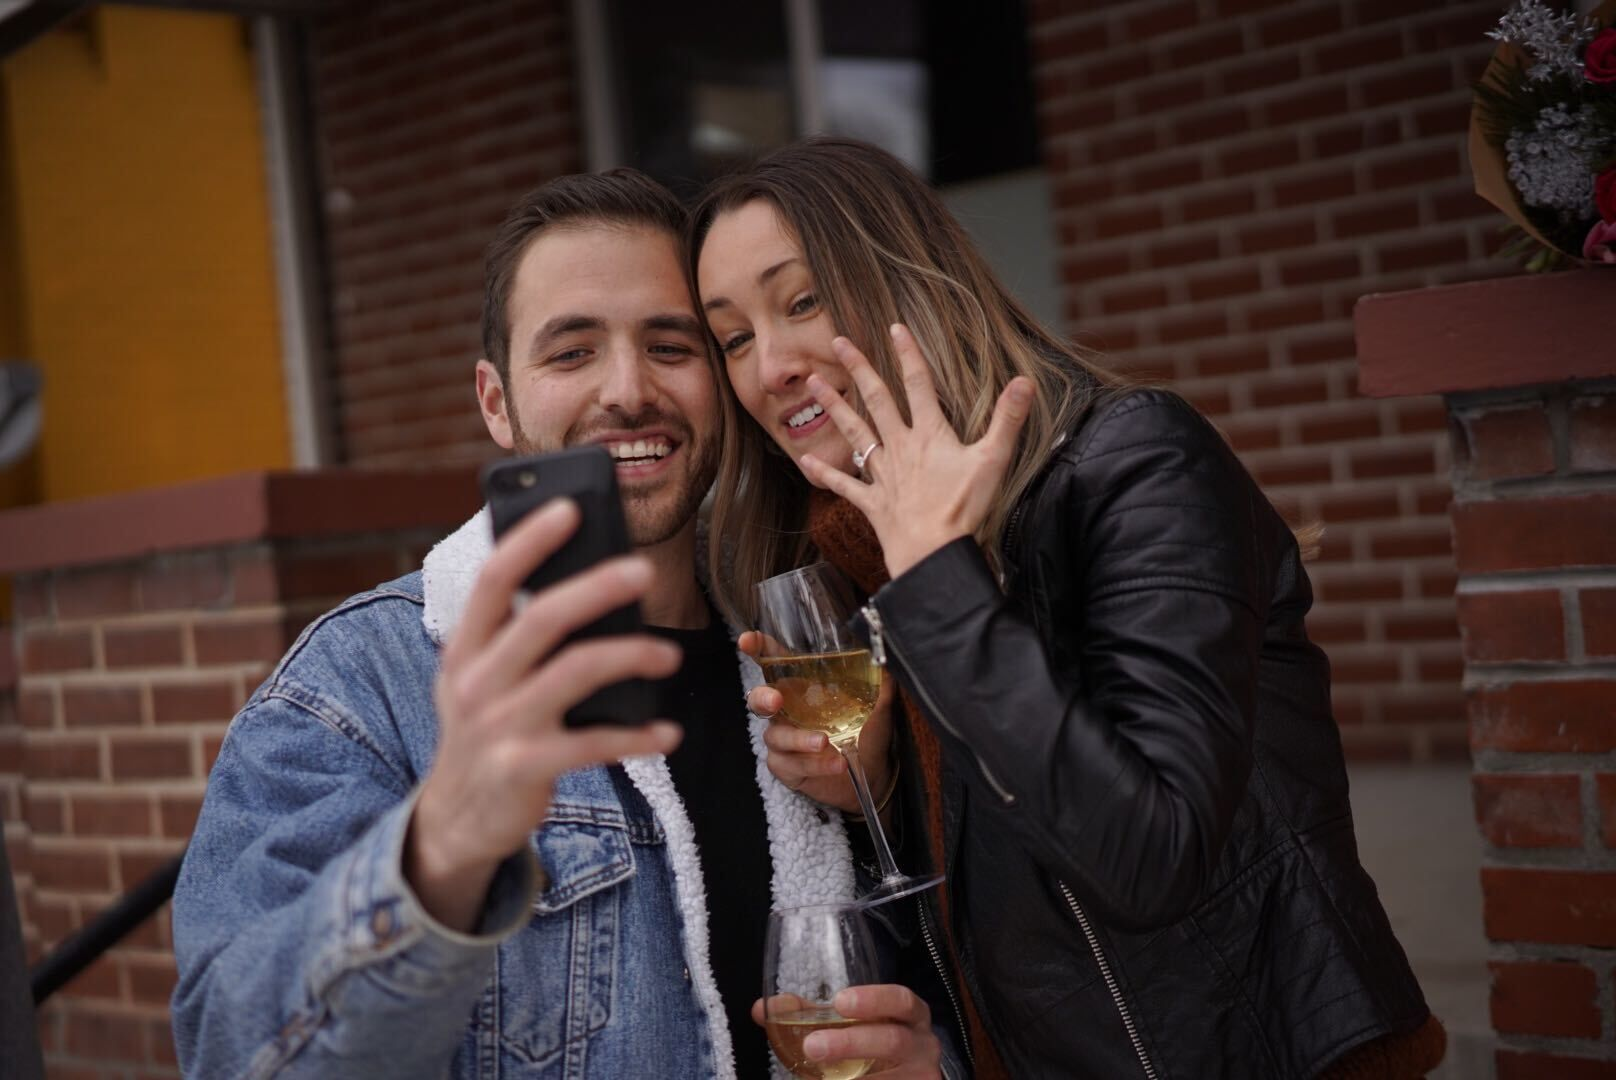 EJ & Chelsea Taking their First Engagement Selfie